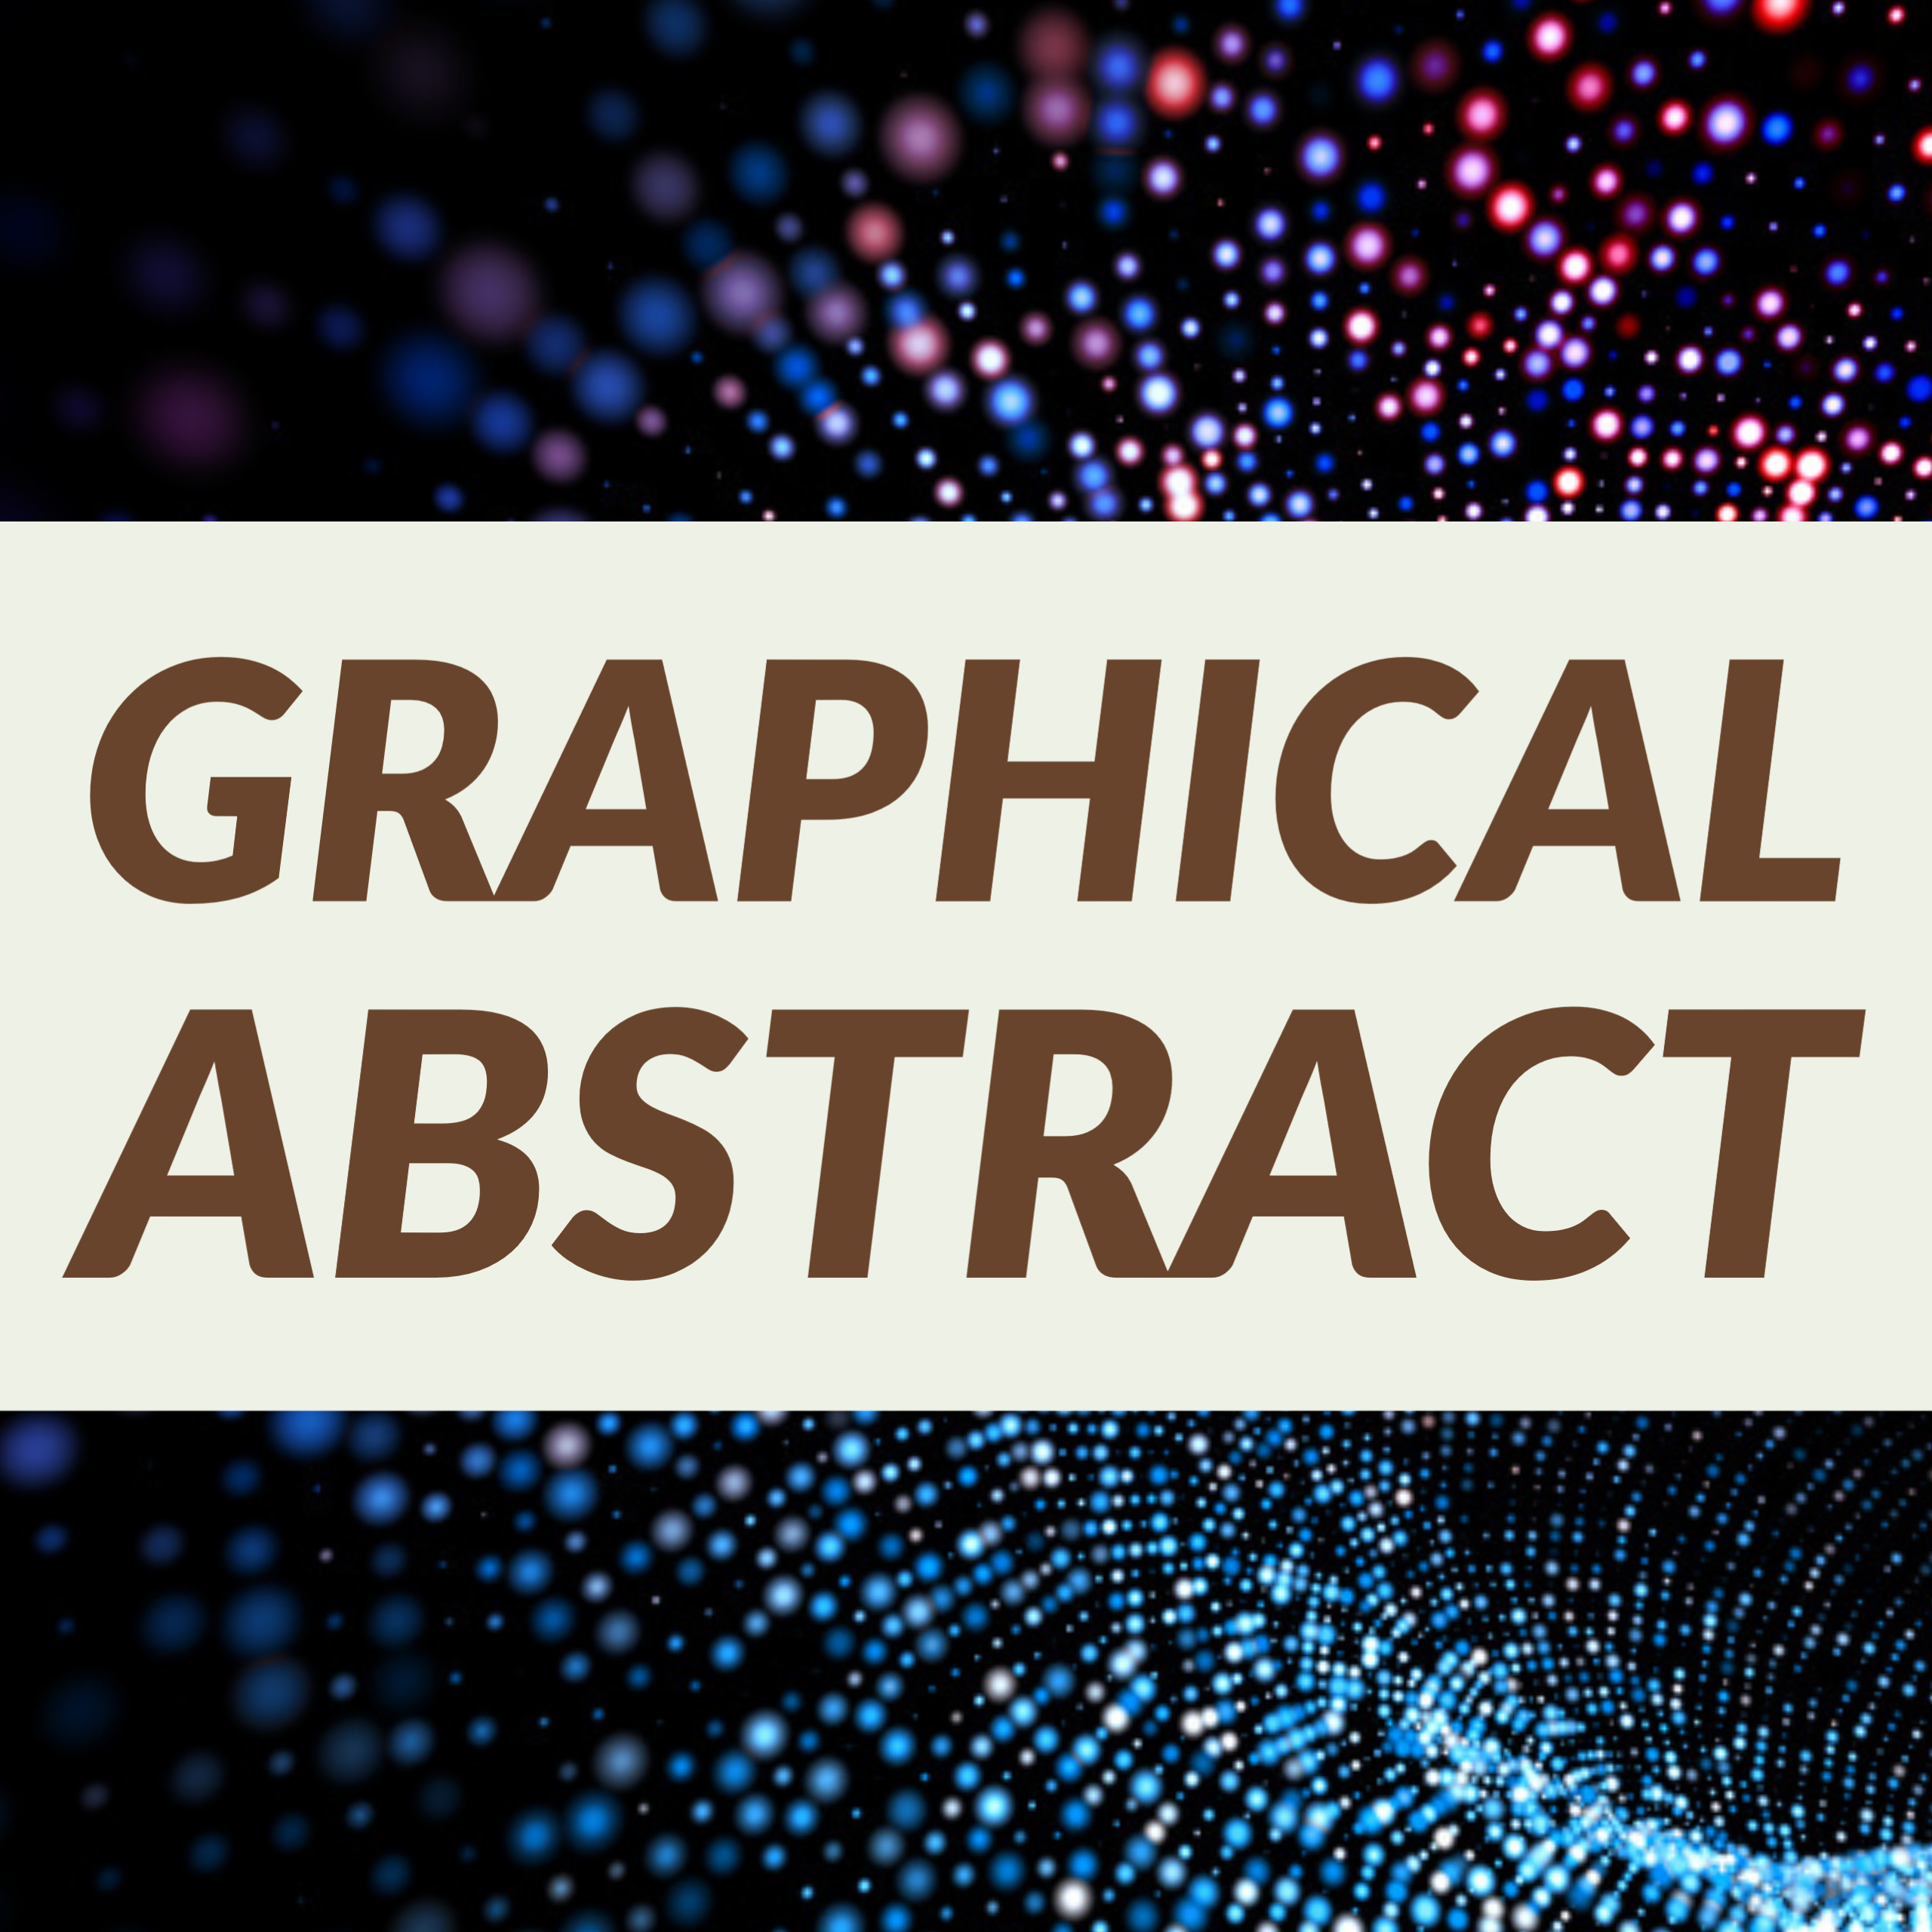 I will draw graphical abstract and do photoshop work